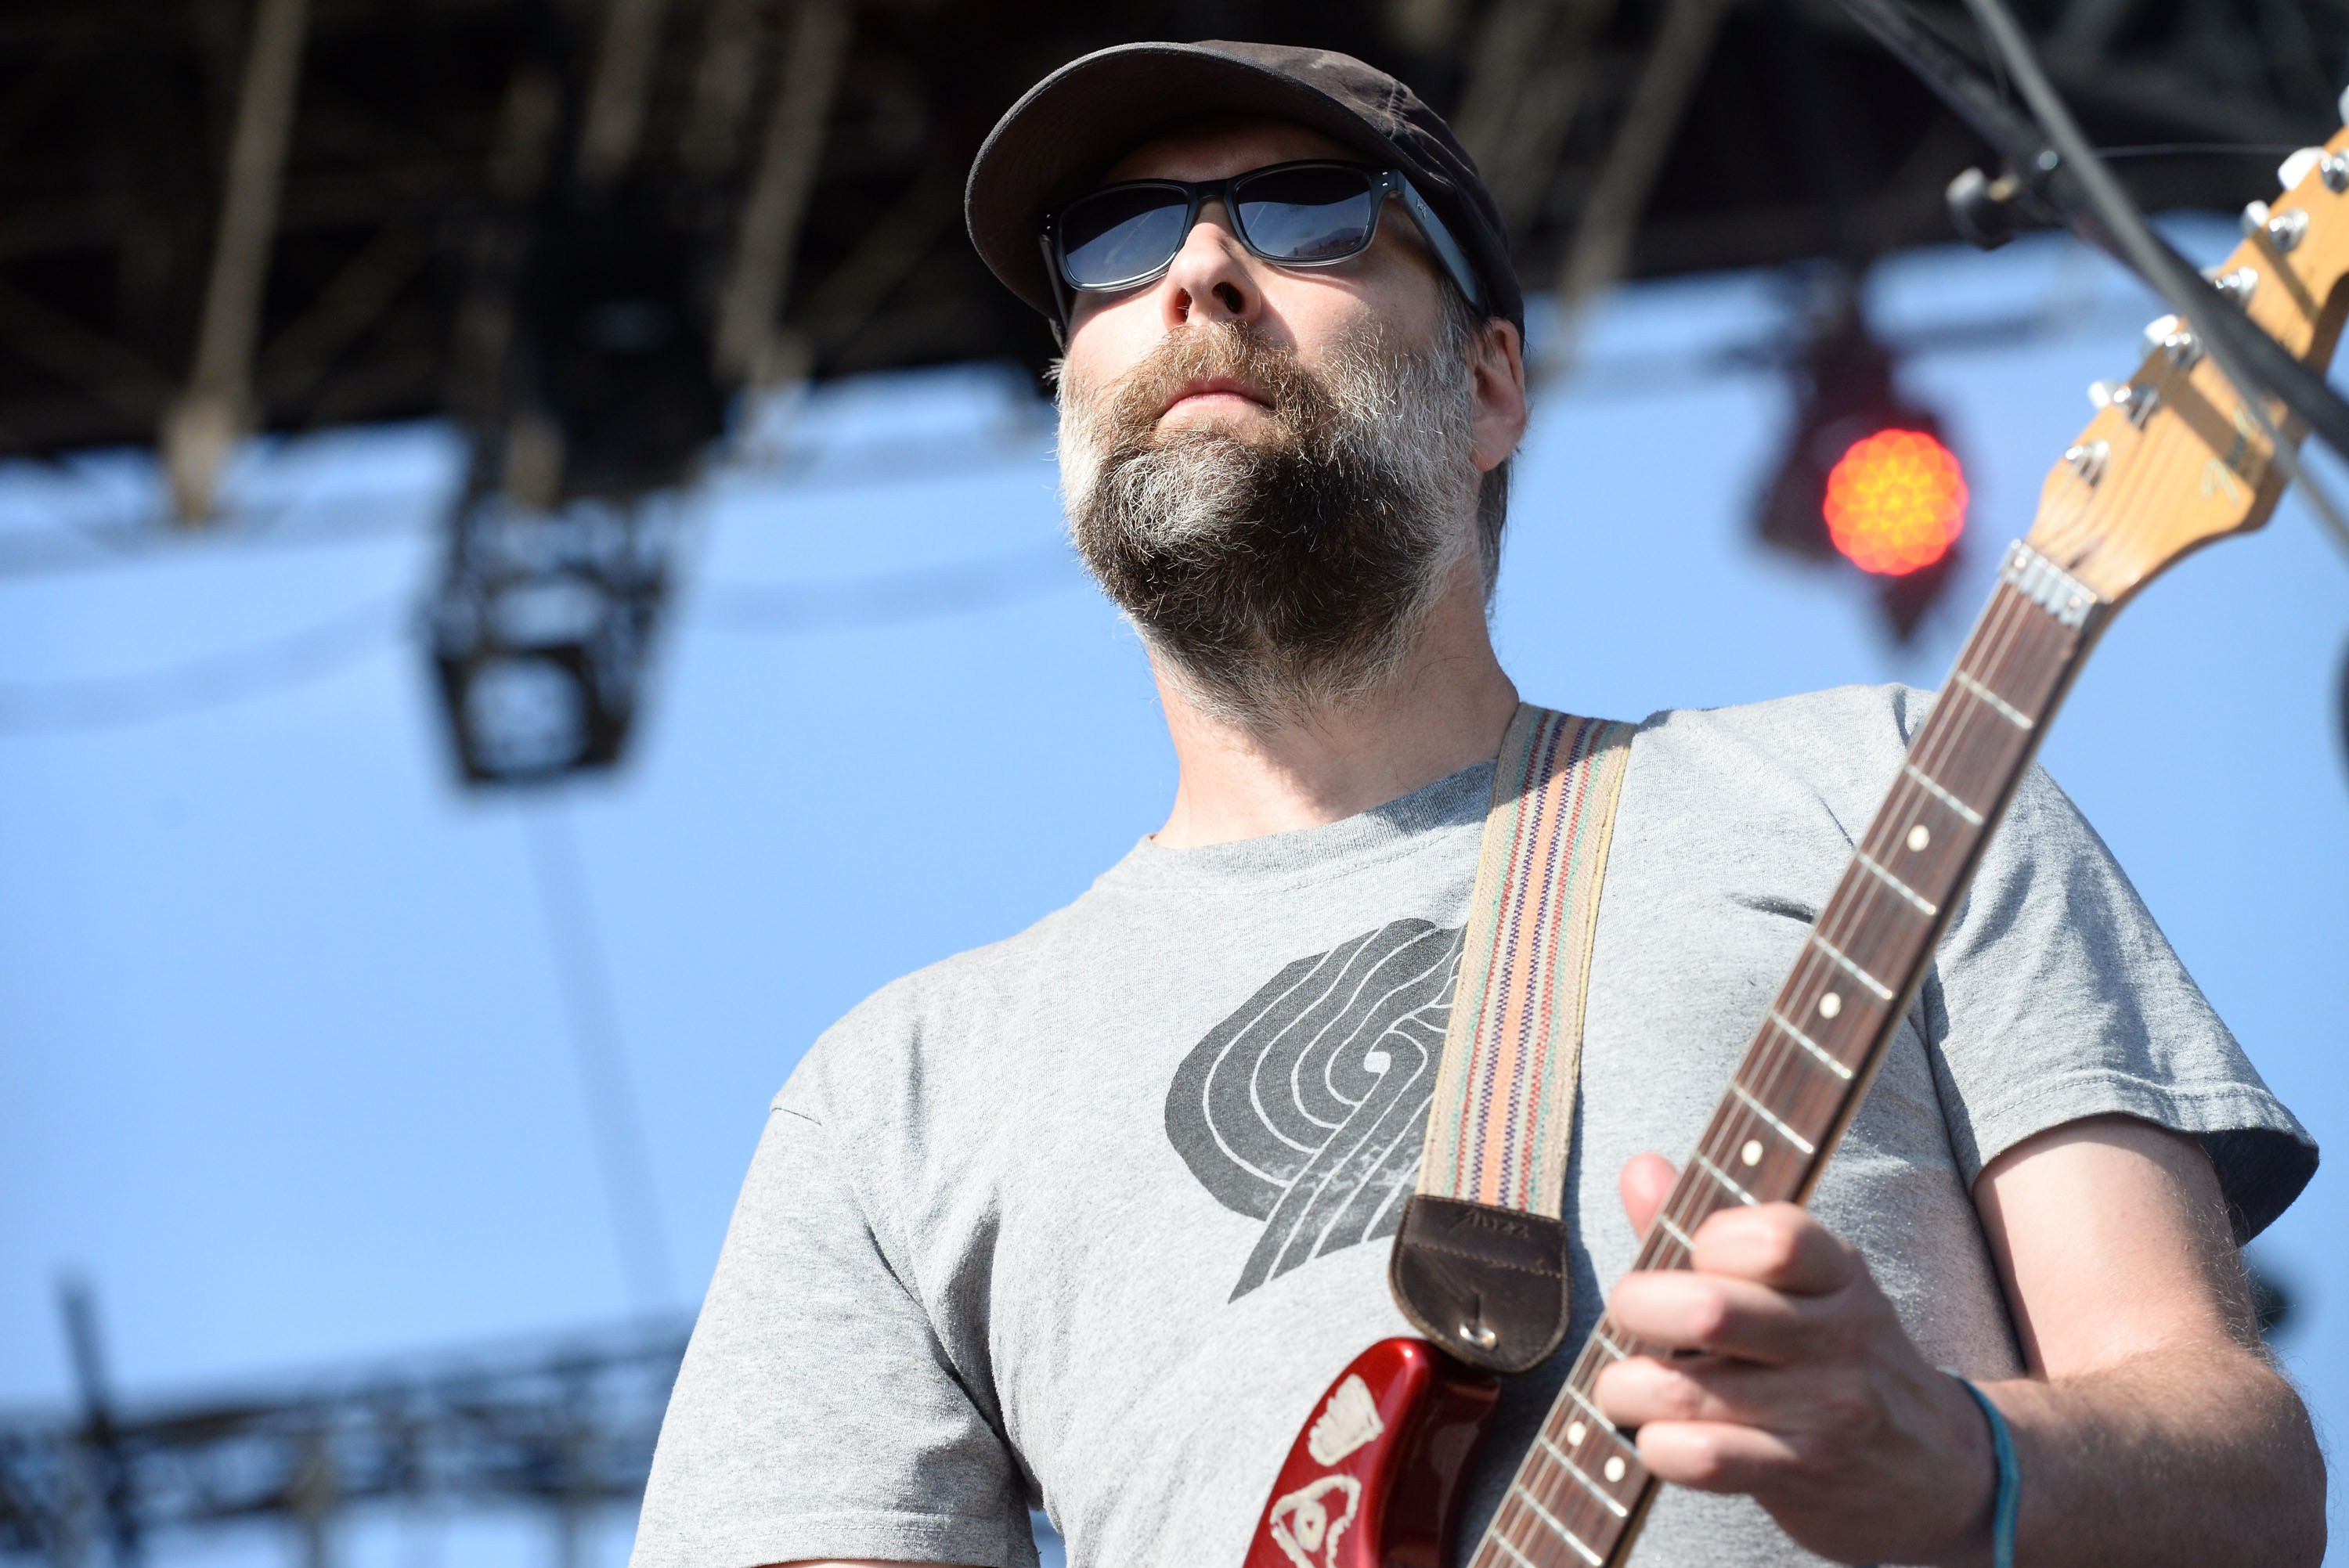 INDIO, CA - APRIL 19:  Singer Doug Martsch of Built to Spill performs onstage during day 2 of the Coachella Music Festival at